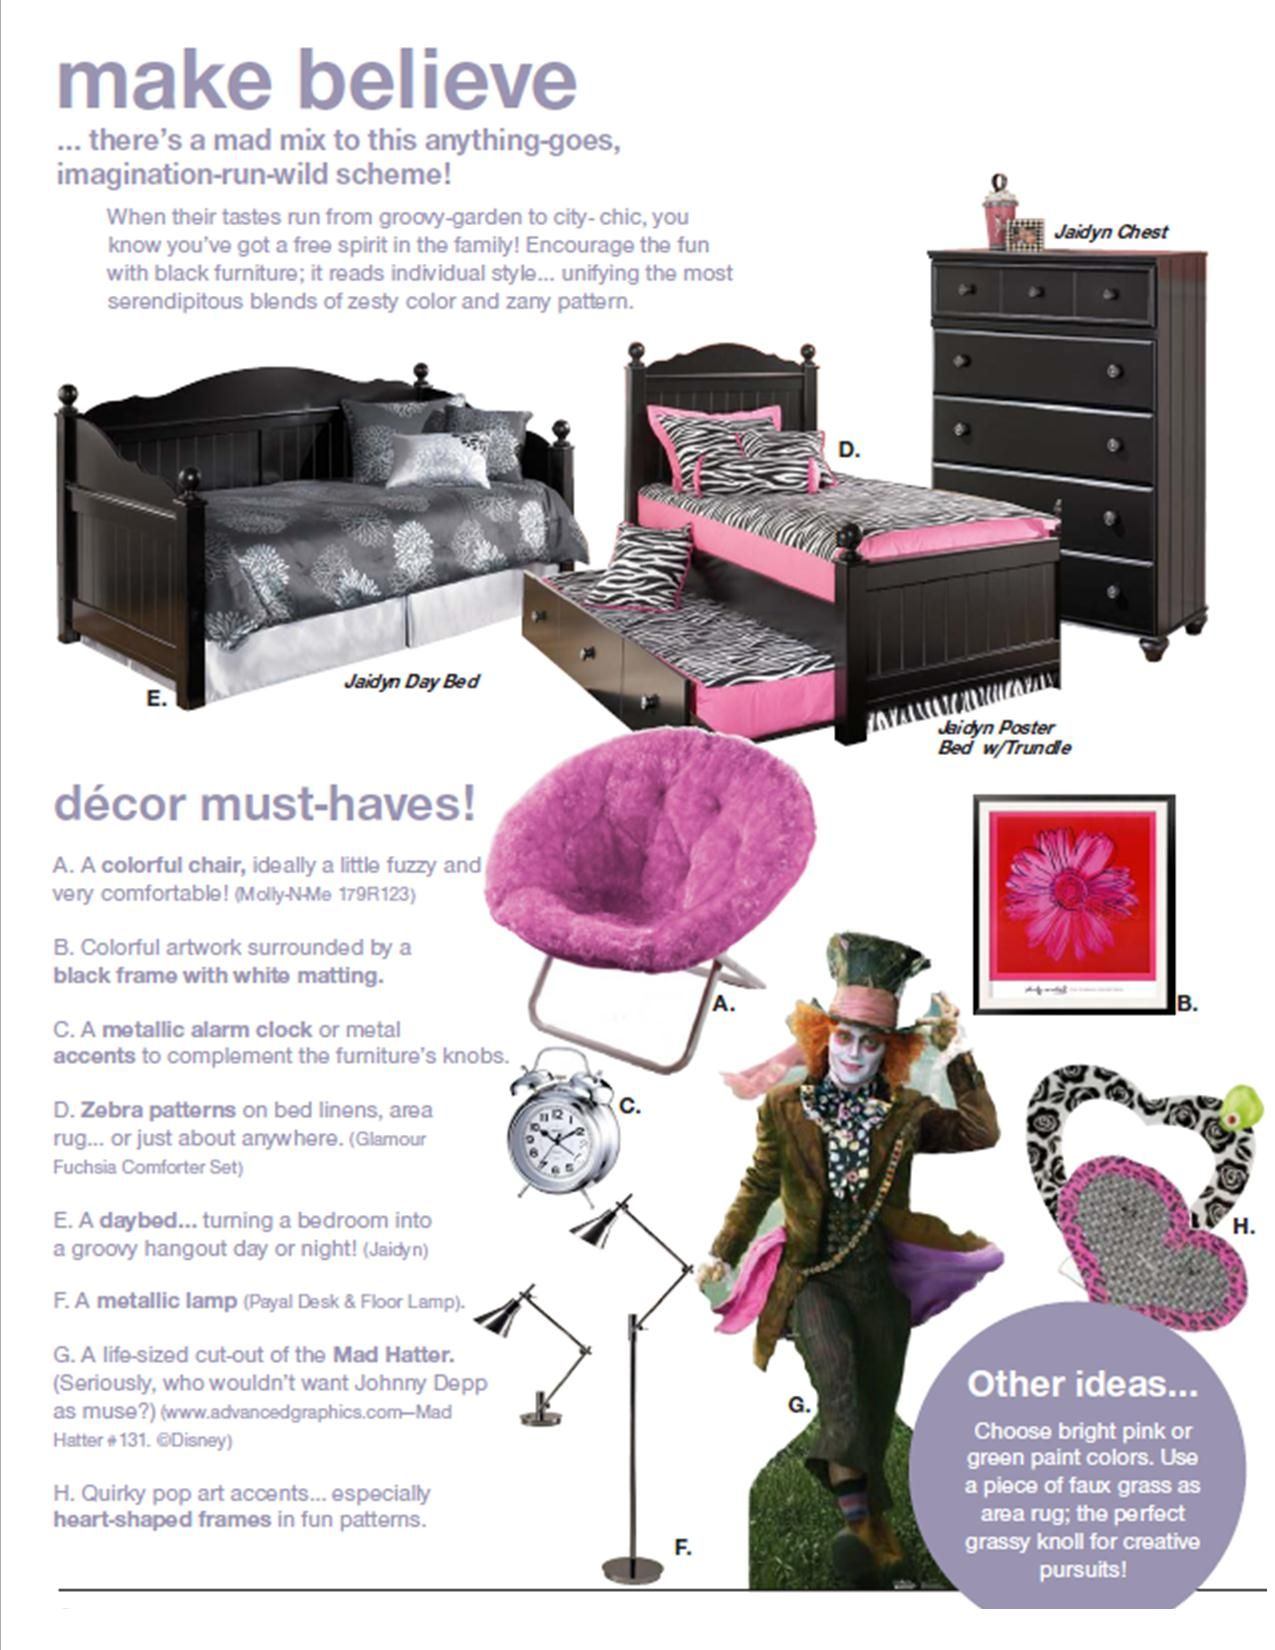 Create make believe bedroom with the Jaidyn Youth Bedroom from Ashley Furniture